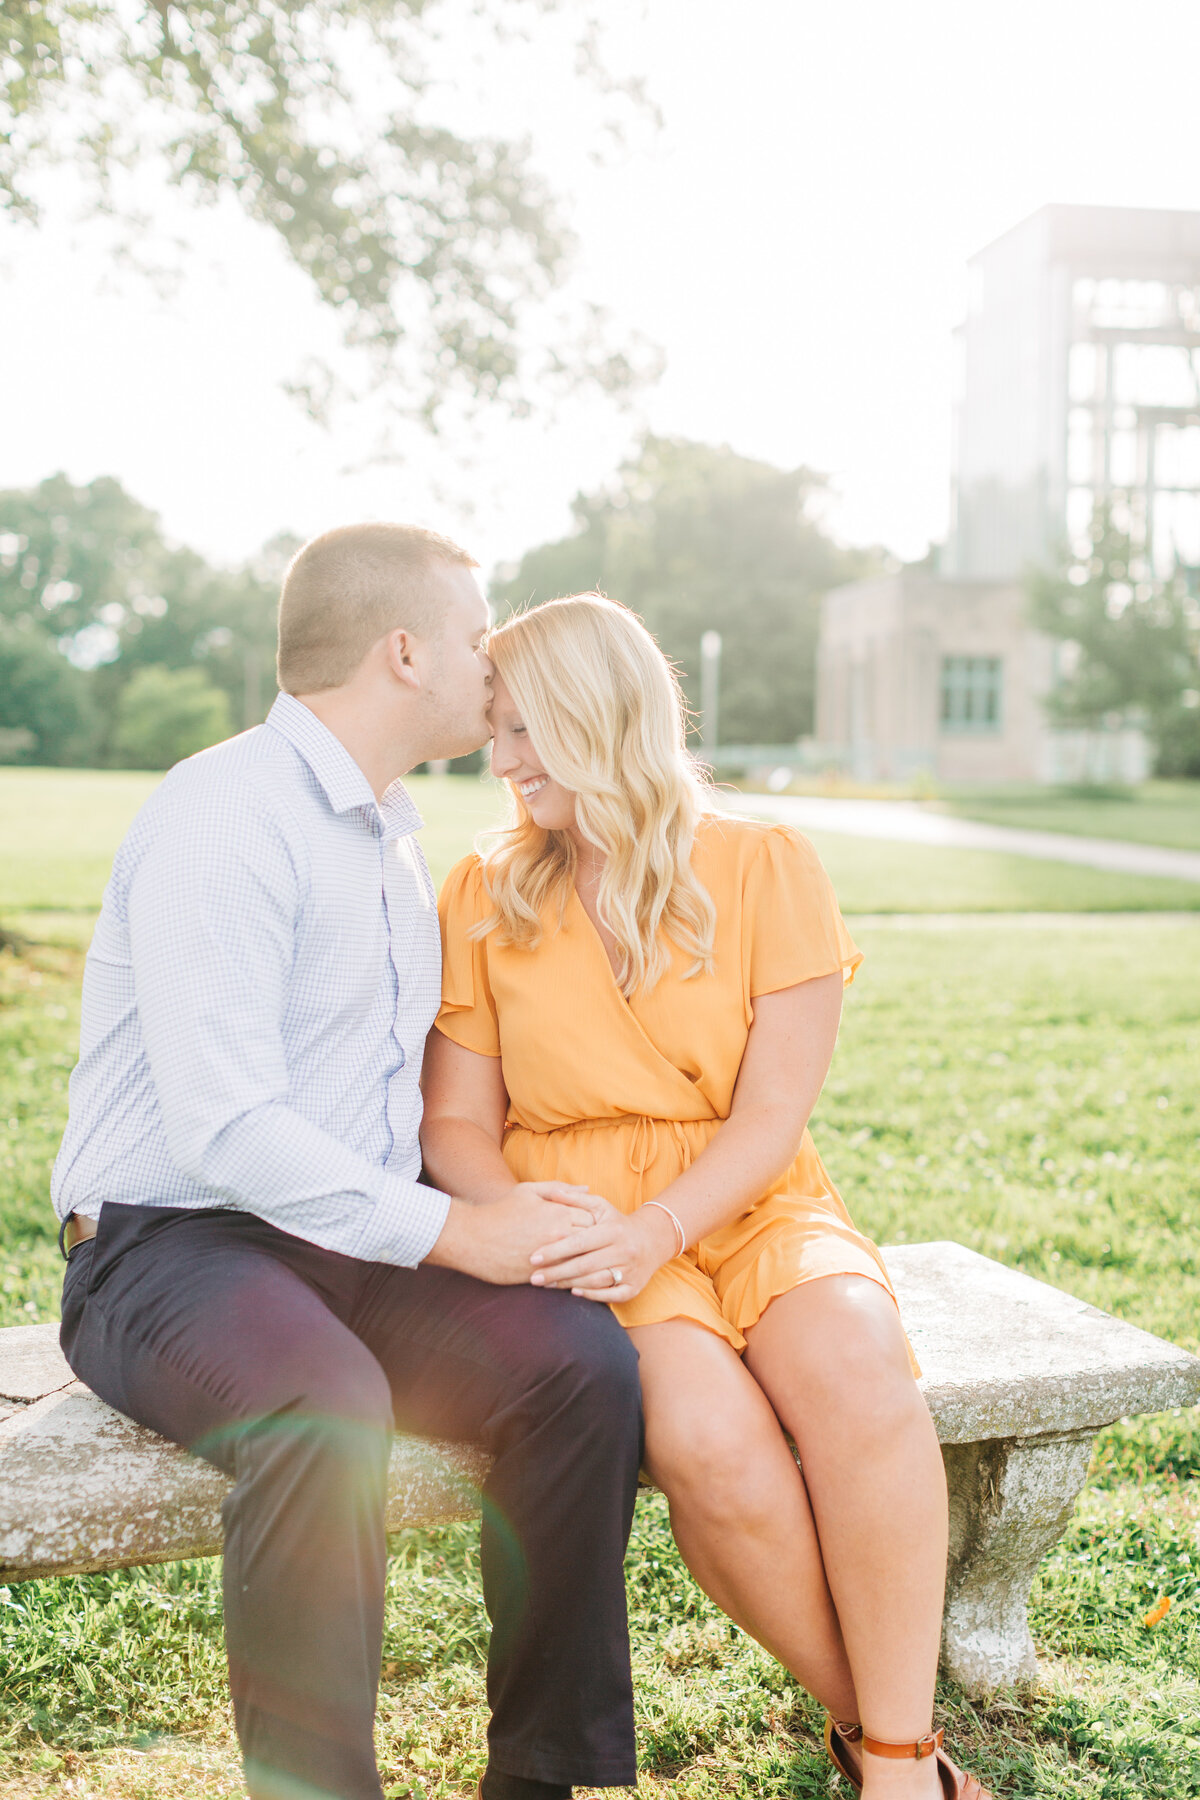 Dorothy_Louise_Photography_Meghan_Patrick_Forest_Park_Engagement-16